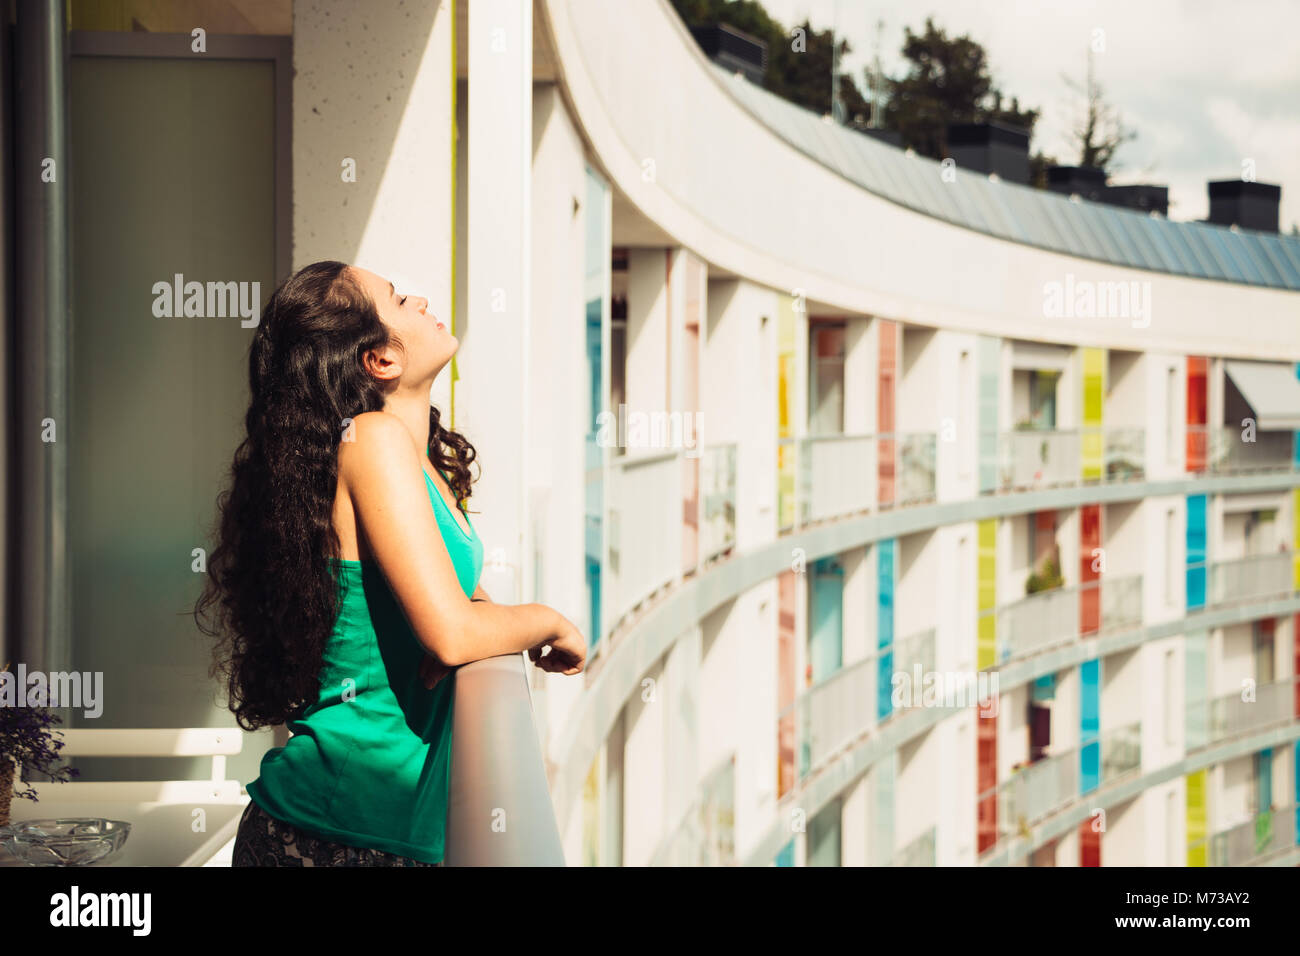 Young woman leaning on the balcony in her apartment to sunbathe - Stock Image